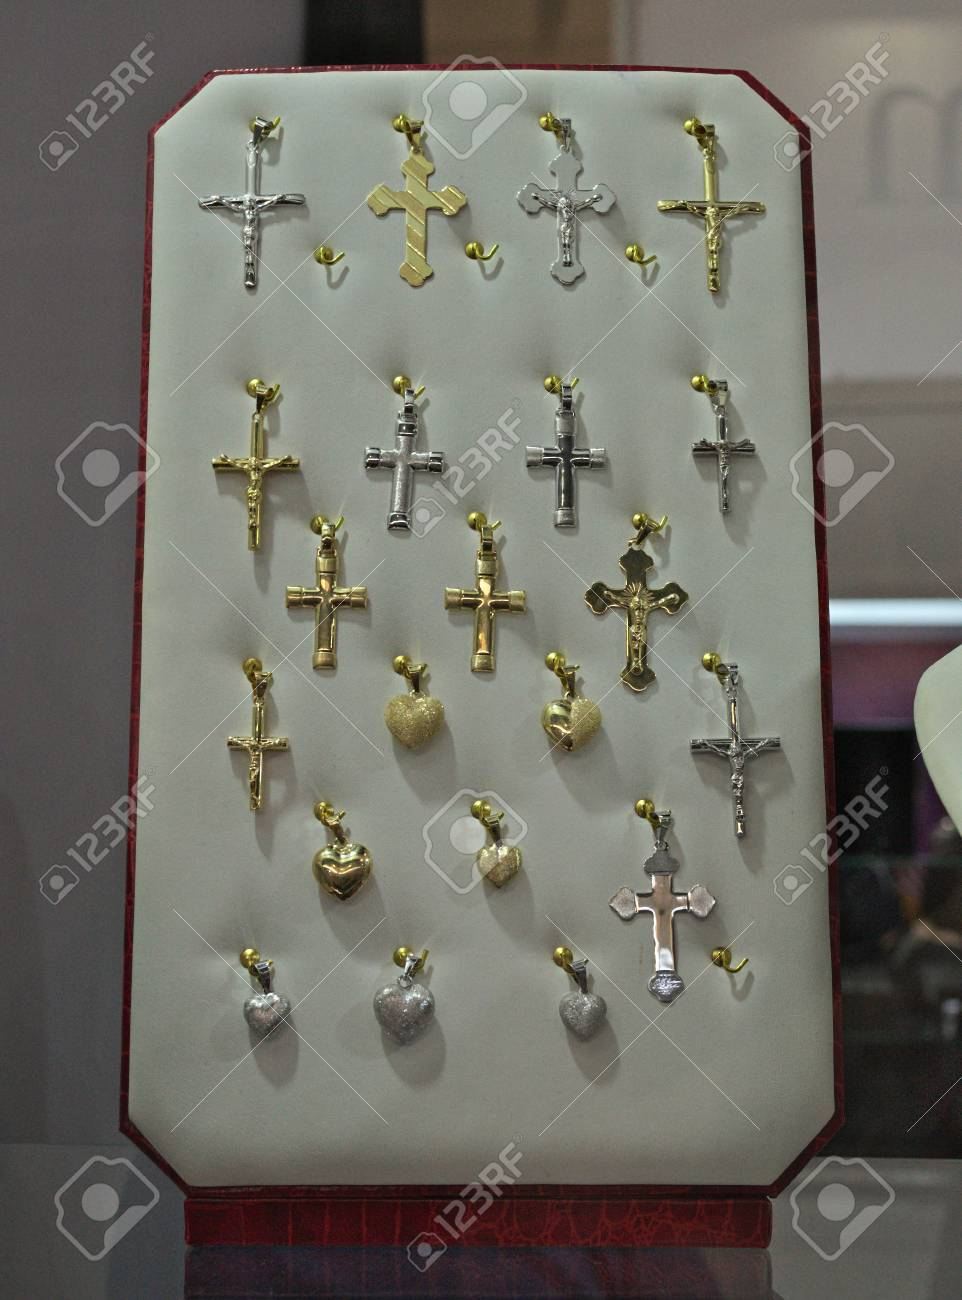 Crosses For Sale >> Gold And Silver Crosses In Showcase For Sale